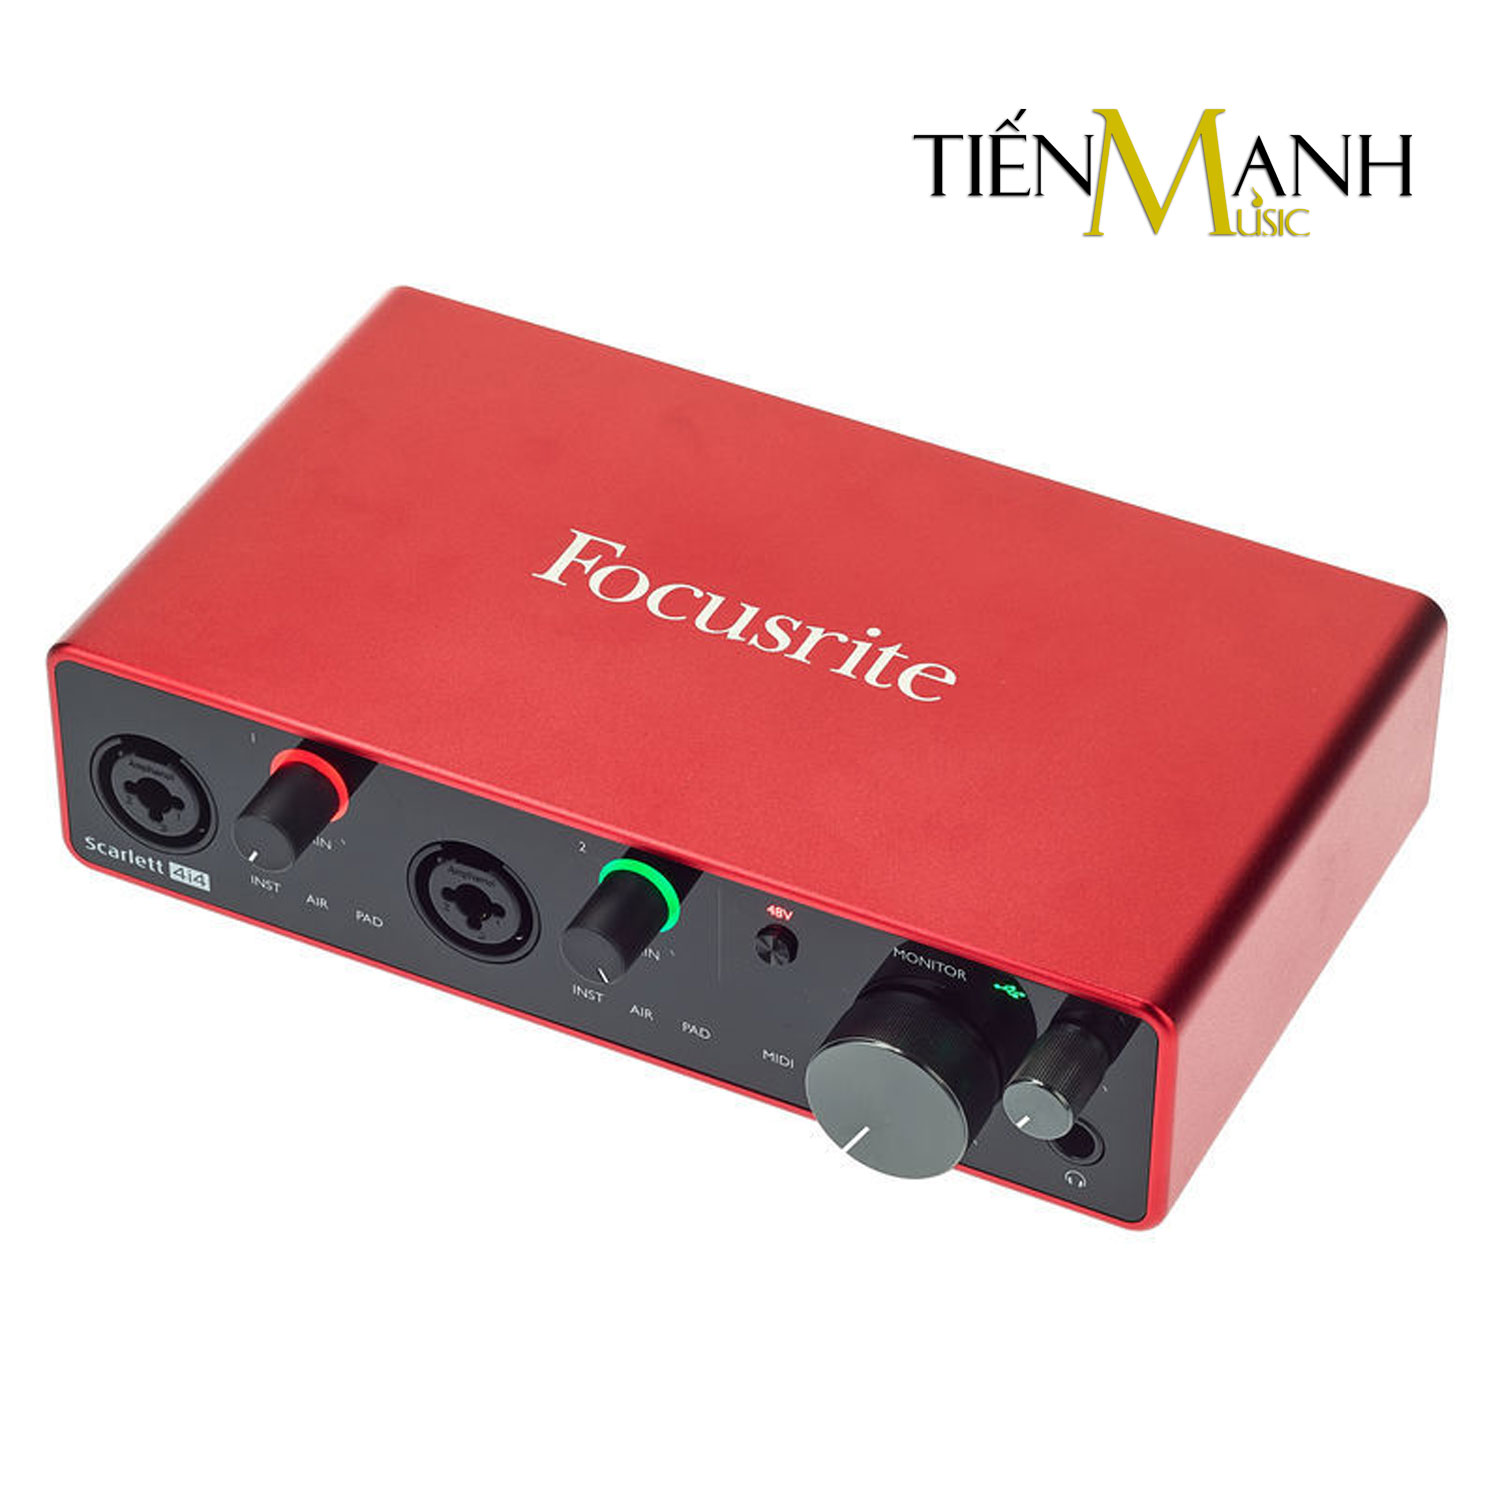 Focusrite Scarlett 4i4 Gen 3 Sound Card Âm Thanh - USB Audio Interface With Pro Tools (Focus 3rd Generation - Gen3)